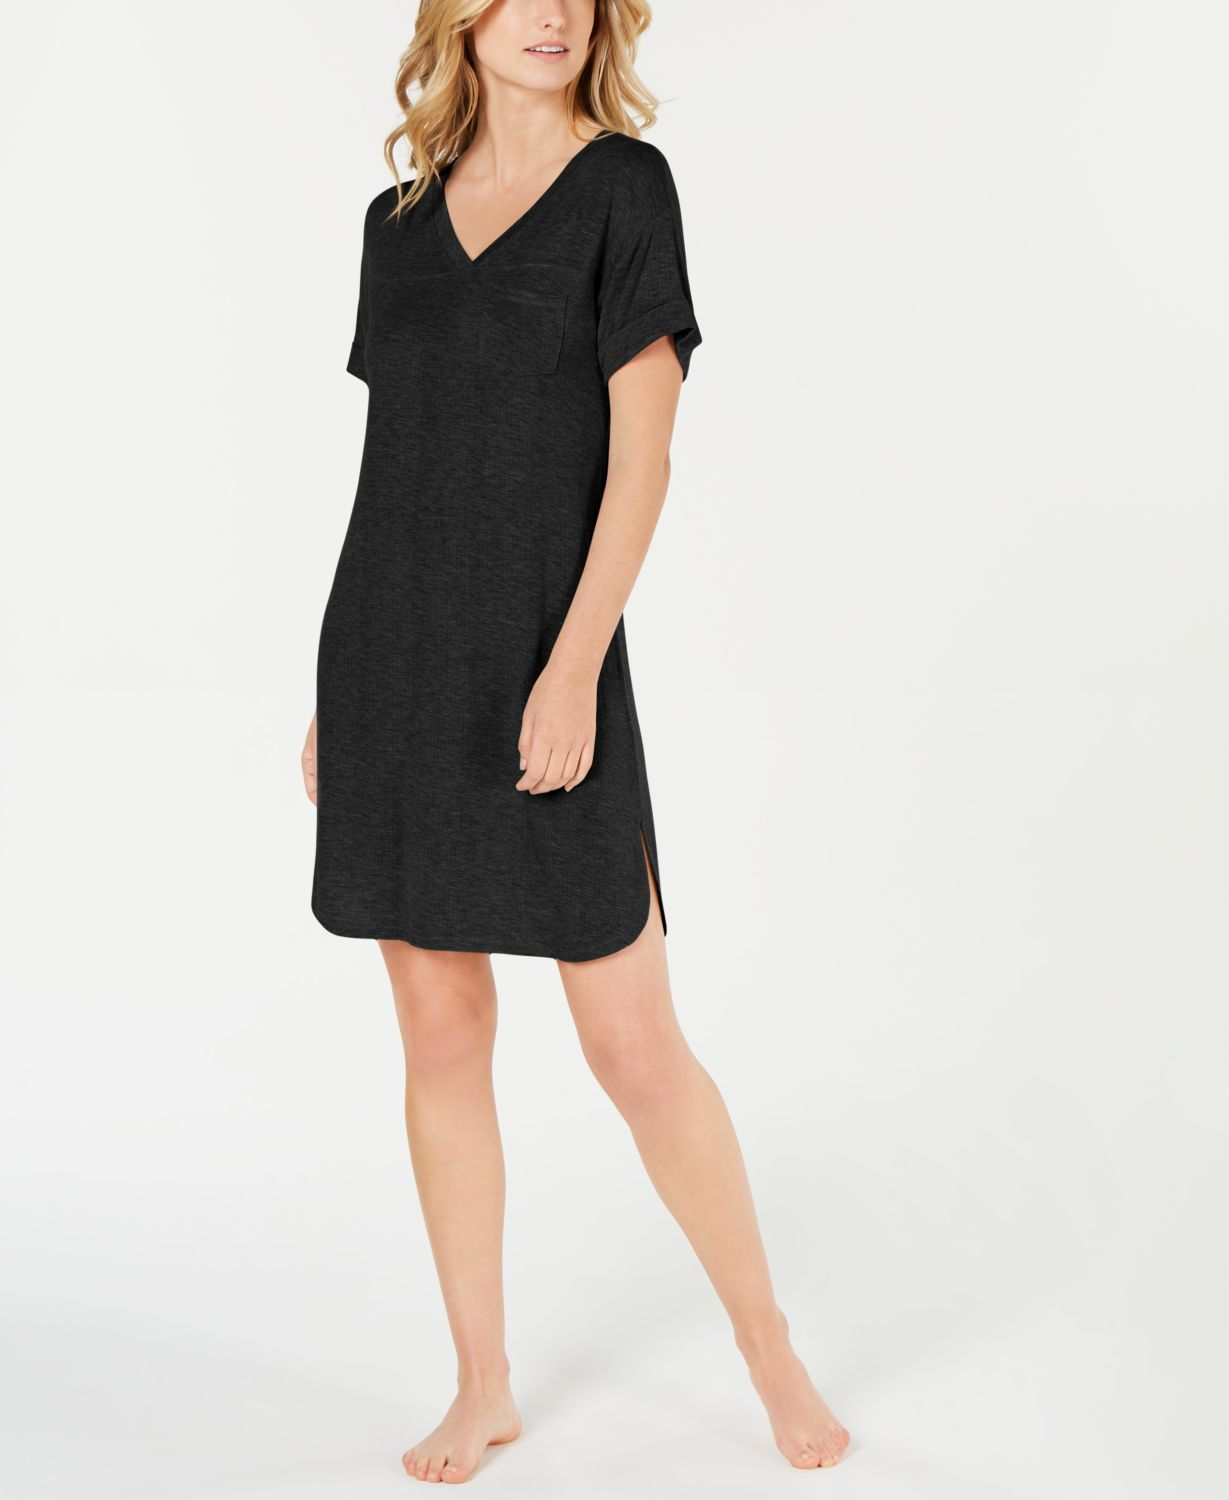 Alfani Ultra Soft Ribbed Knit Sleepshirt Nightgown, Created for Macy's  & Reviews - Bras, Panties & Lingerie - Women - Macy's